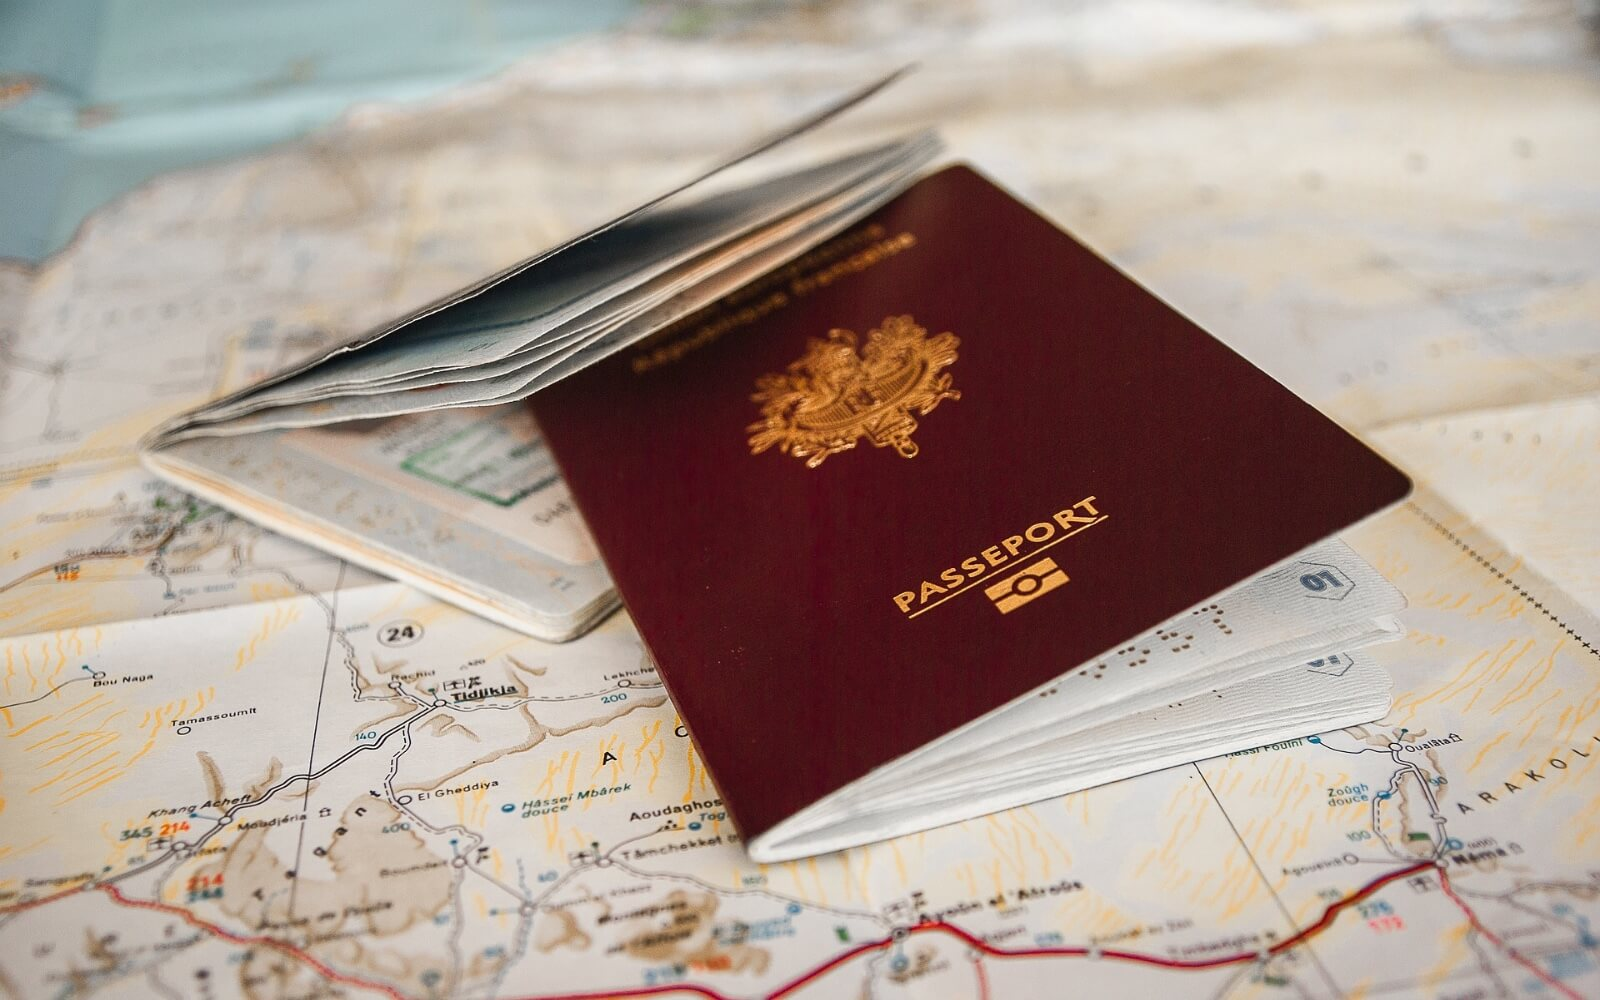 A couple of passports sit on top of a map